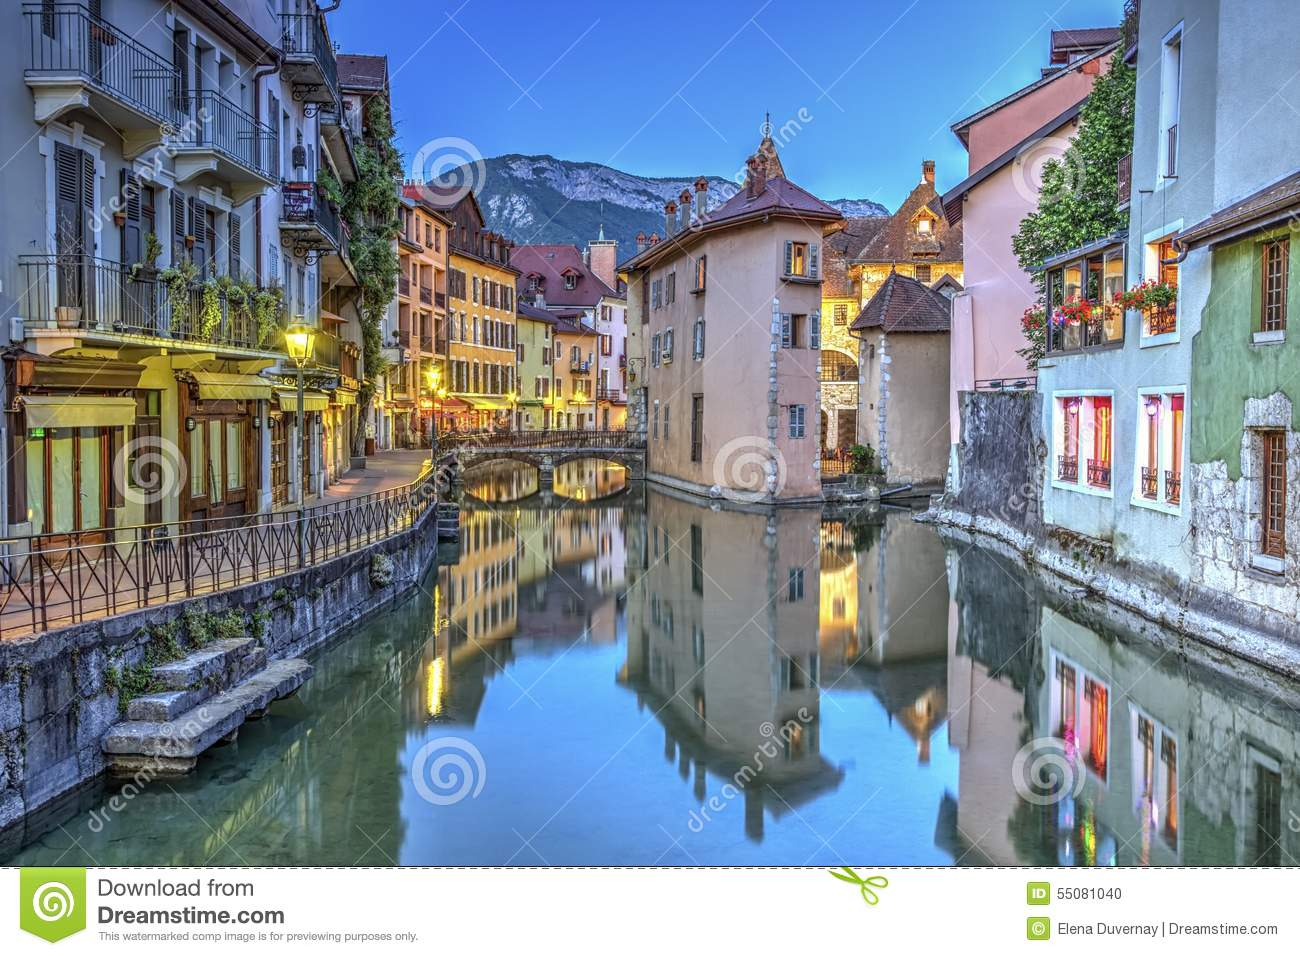 quai de l 39 ile en kanaal in annecy oude stad frankrijk stock foto afbeelding 55081040. Black Bedroom Furniture Sets. Home Design Ideas